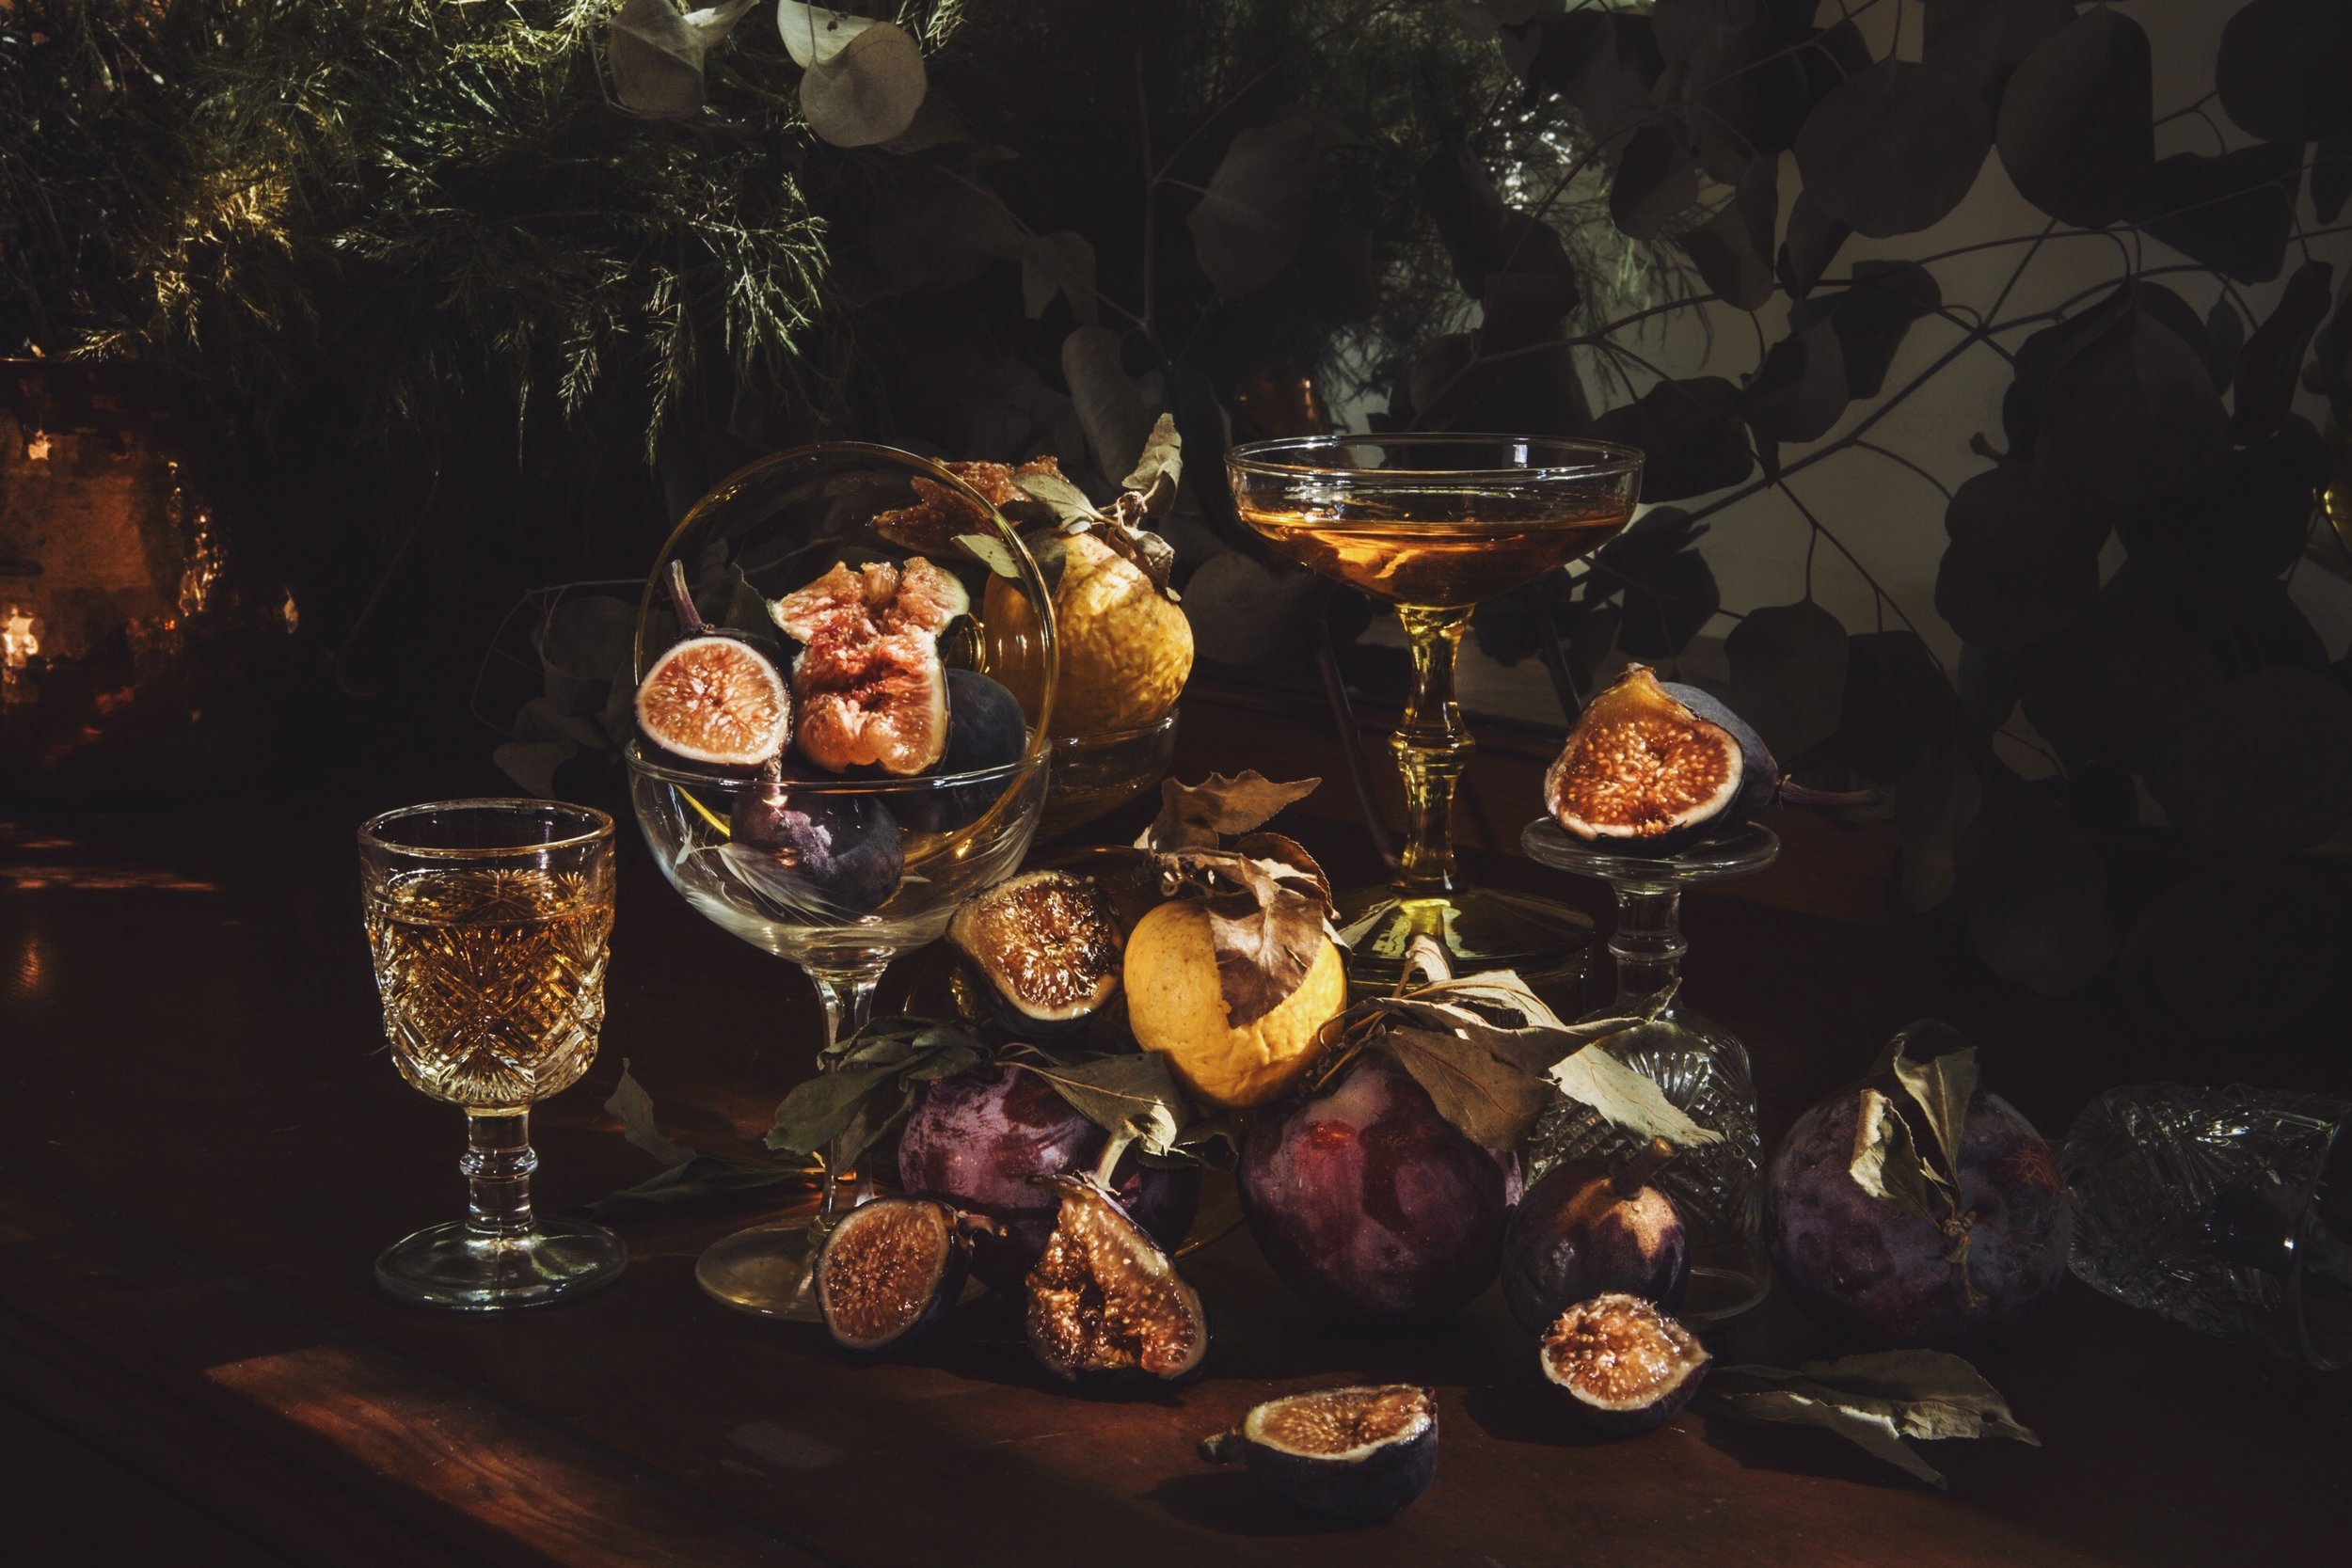 STILL LIFE WITH FIGS |  2018